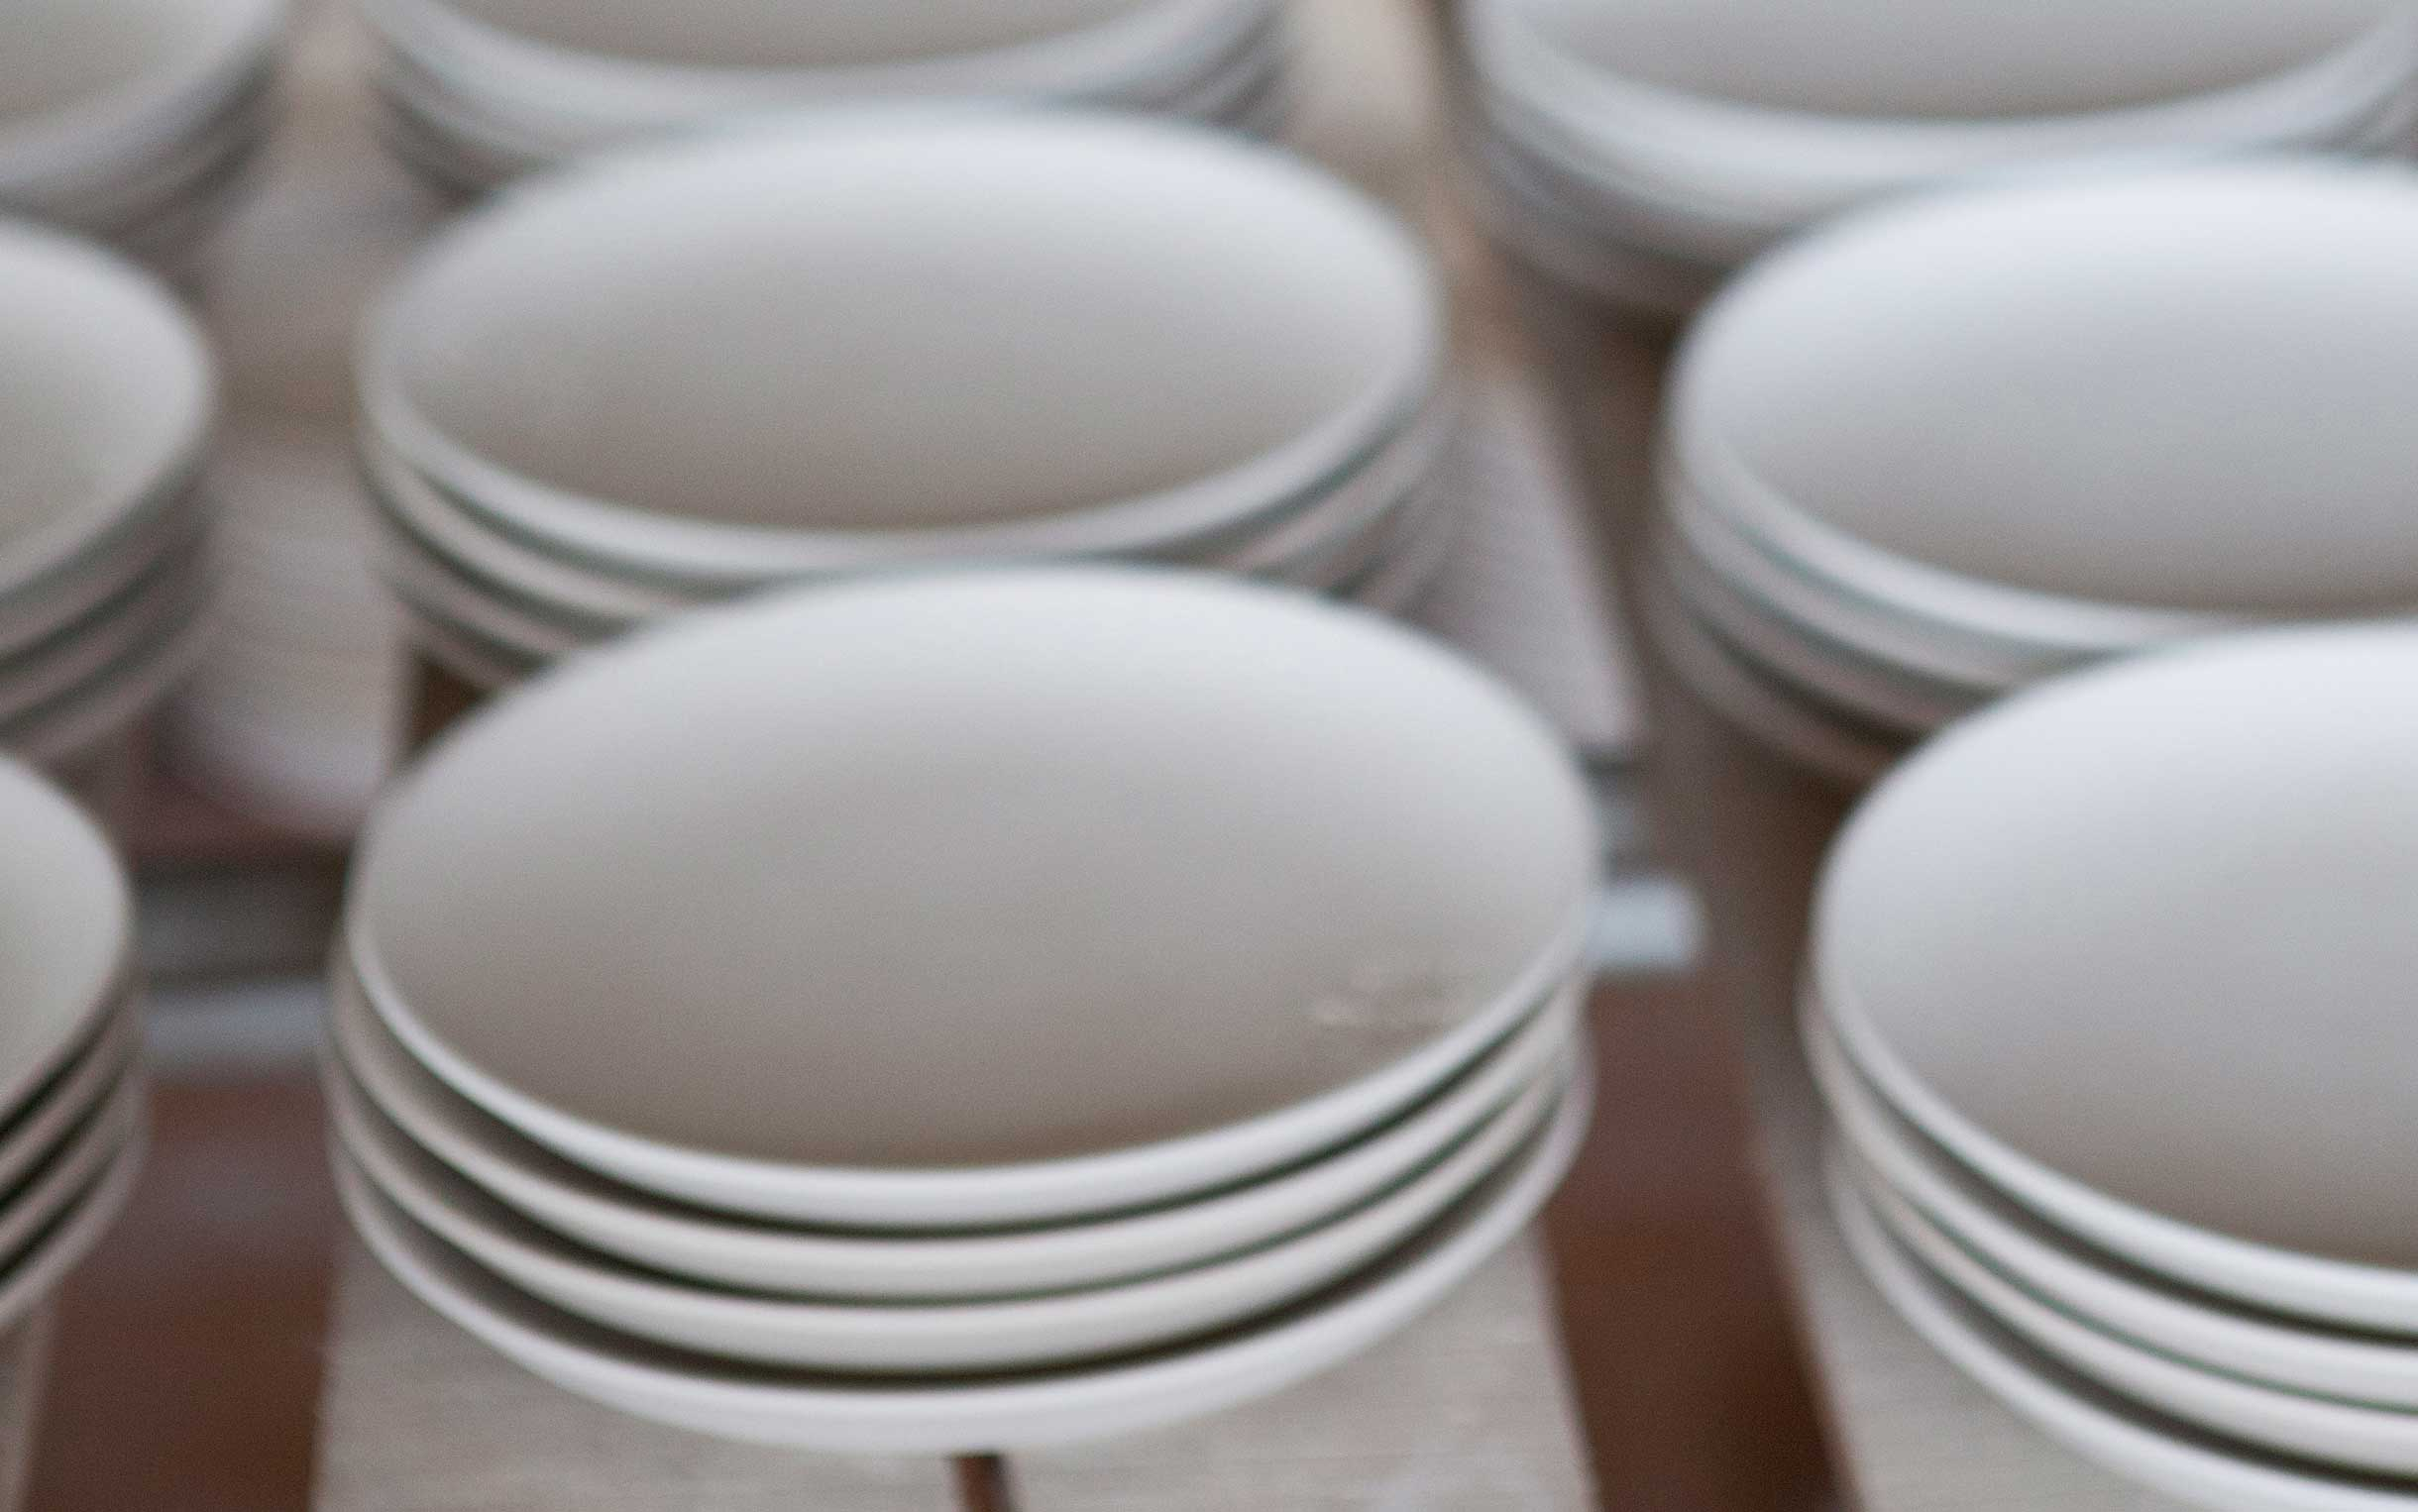 Ceramic plates in Vietnam. Photo: Bonnie Savage/Oxfam AUS